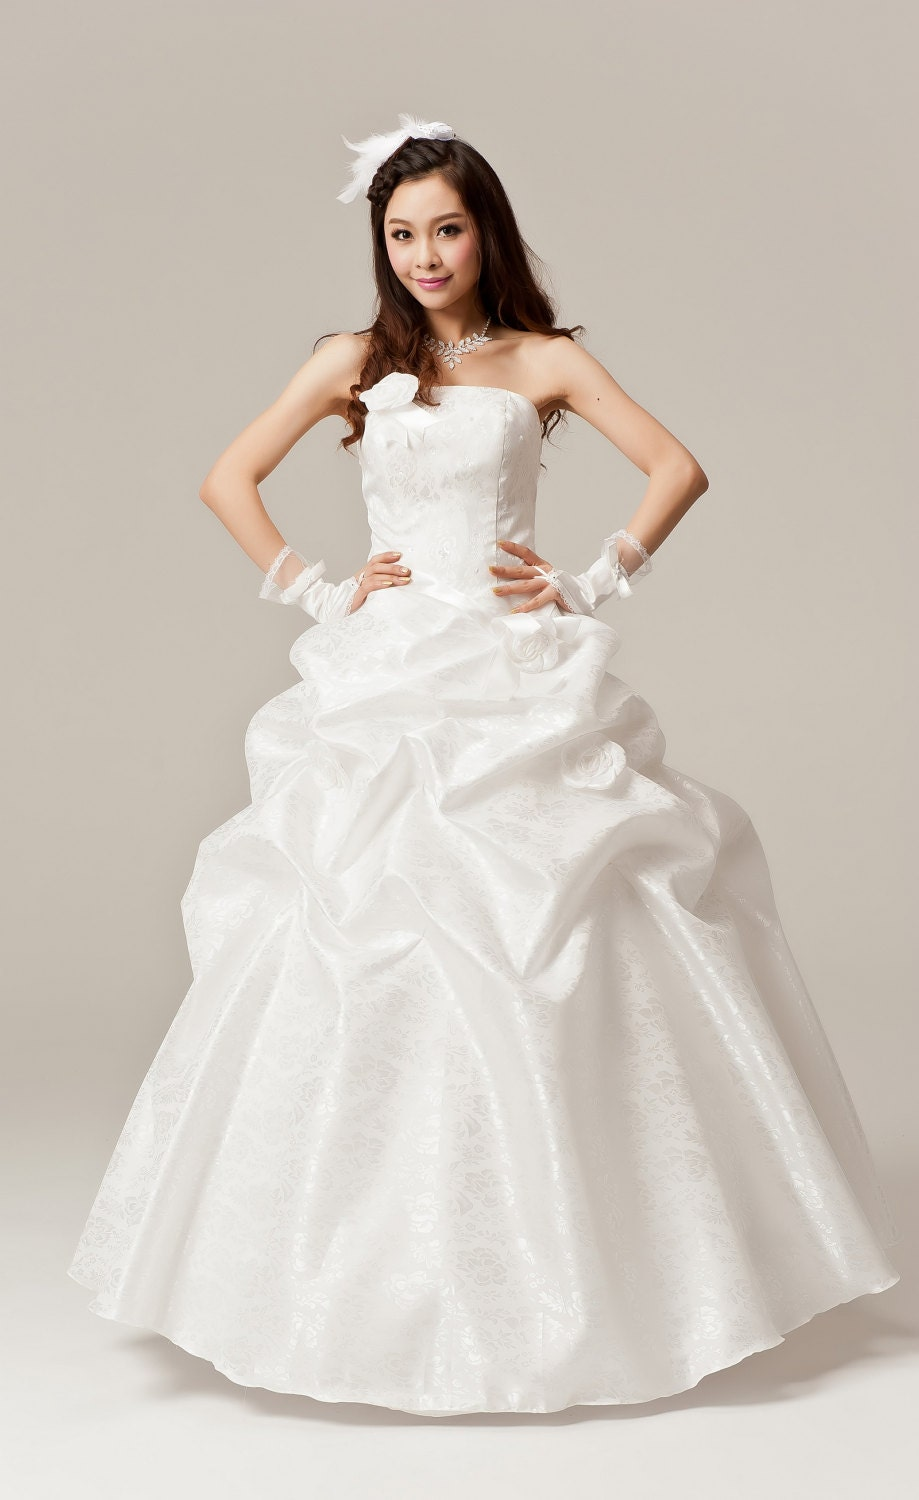 Cost-effective Formal Women Dresses for PROM by DesignBridal 7b36d0064